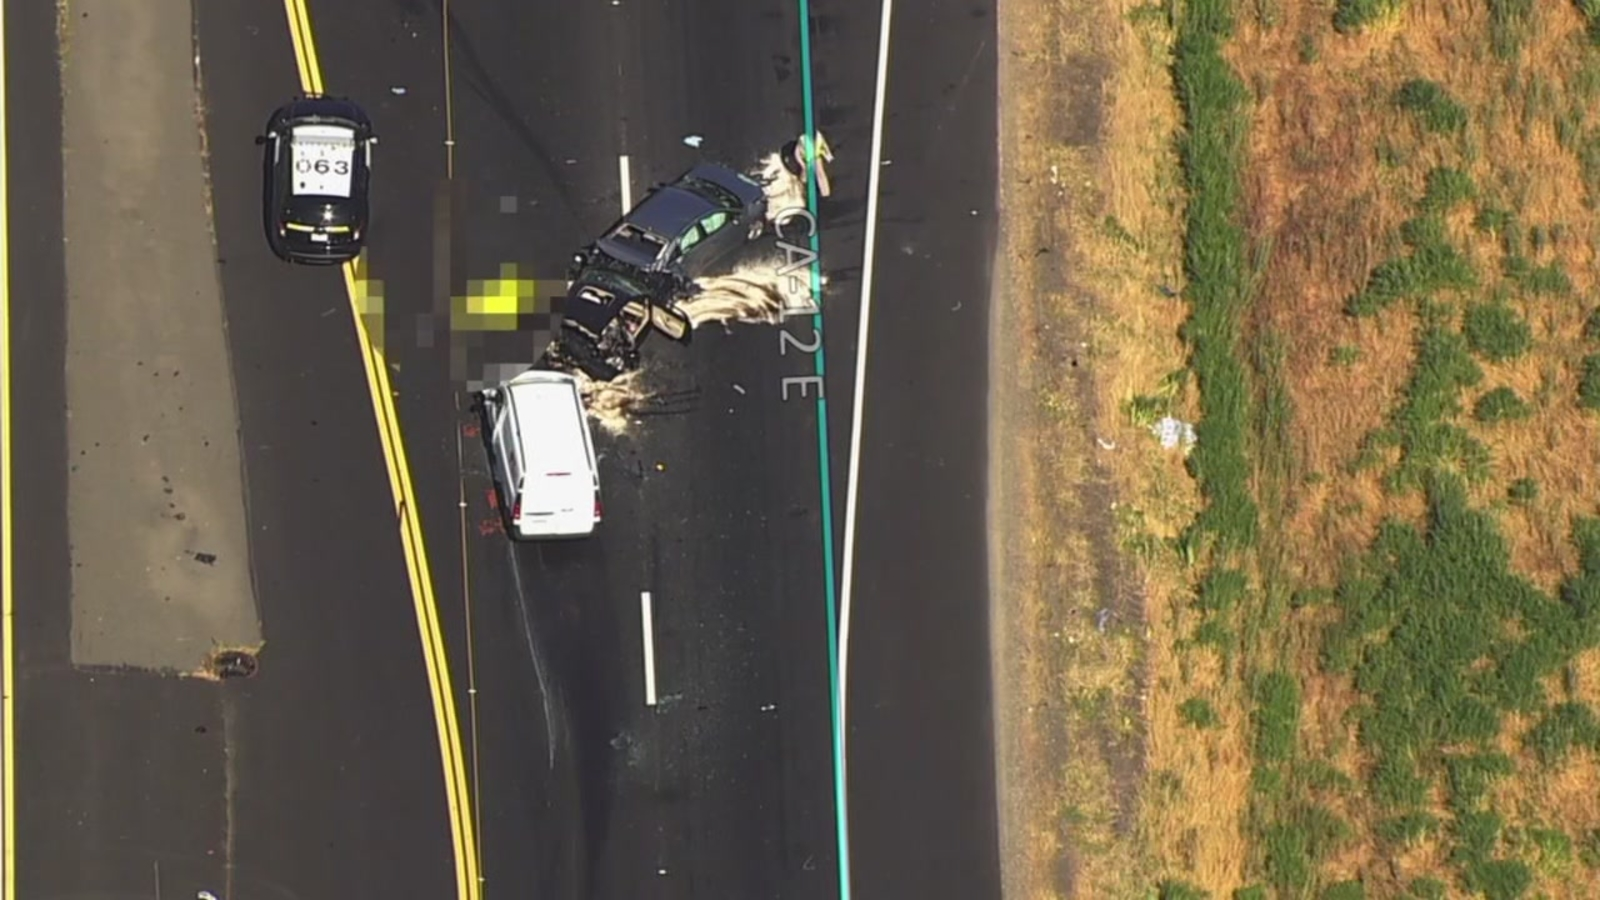 1 person killed in 4 car crash on Highway 12 in Fairfield